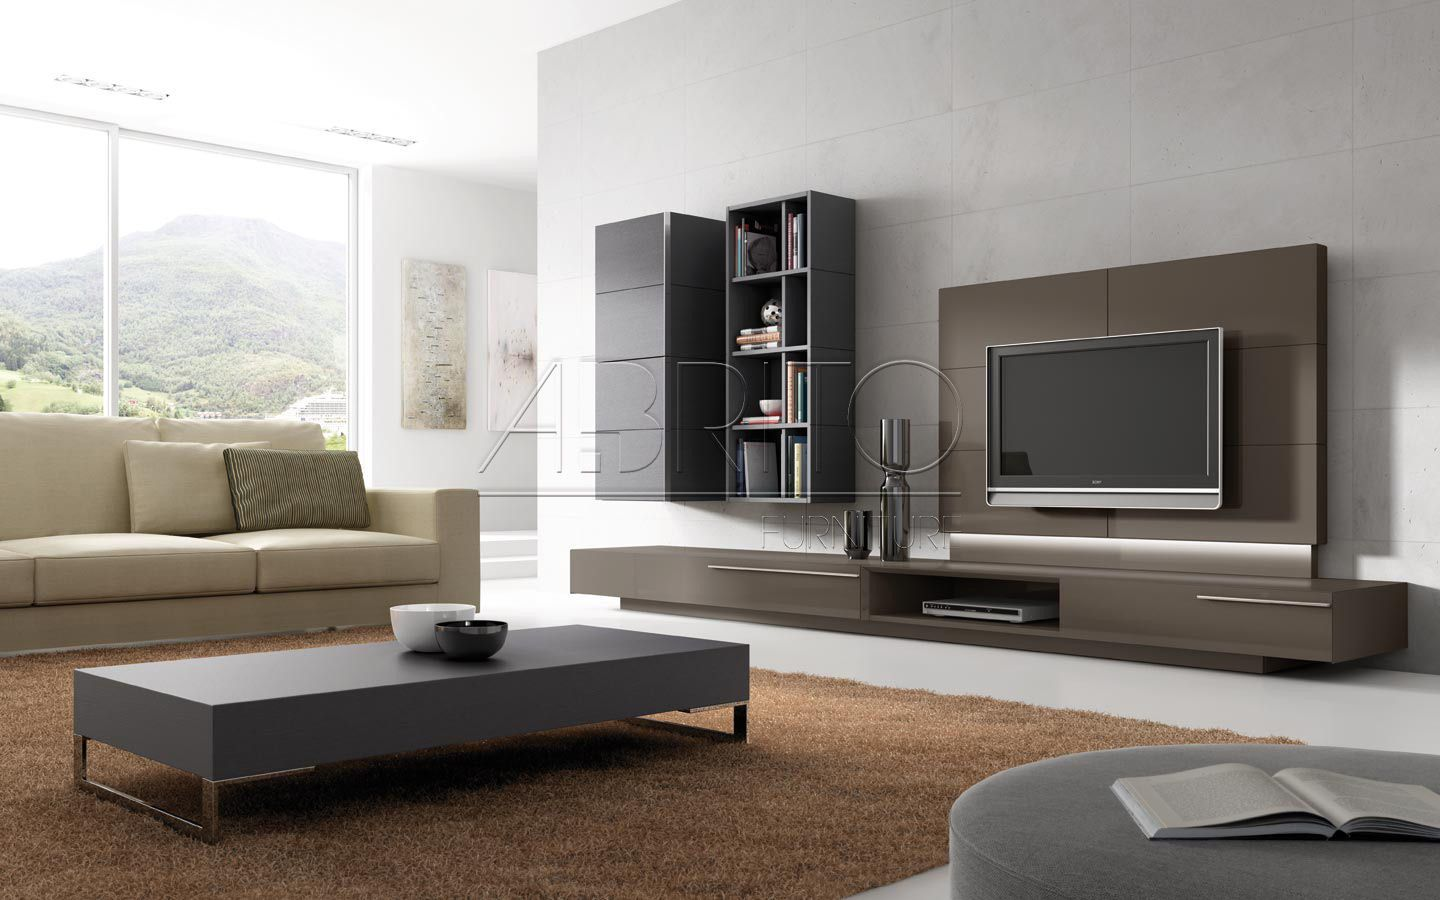 Tv Wall Units For Living Room Browse Our Selection Of 15 Modern Tv Wall Units For Wonderful